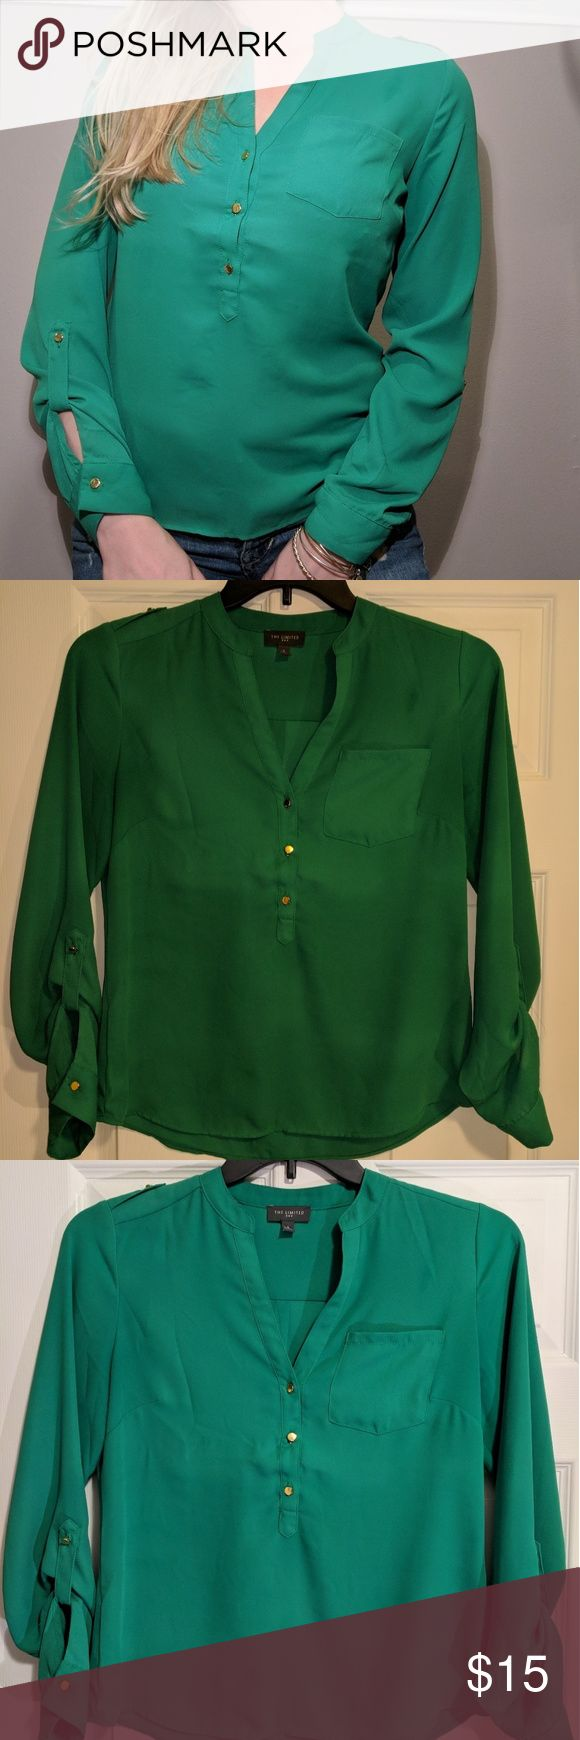 The Limited Kelly Green Long Sleeve Top Great condition only worn twice. Top button comes apart bc my chest is too large. (34D). It's an amazing top and deserves a new life! Gold button accents, pocket on front, and had ties on each arm The Limited Tops Blouses